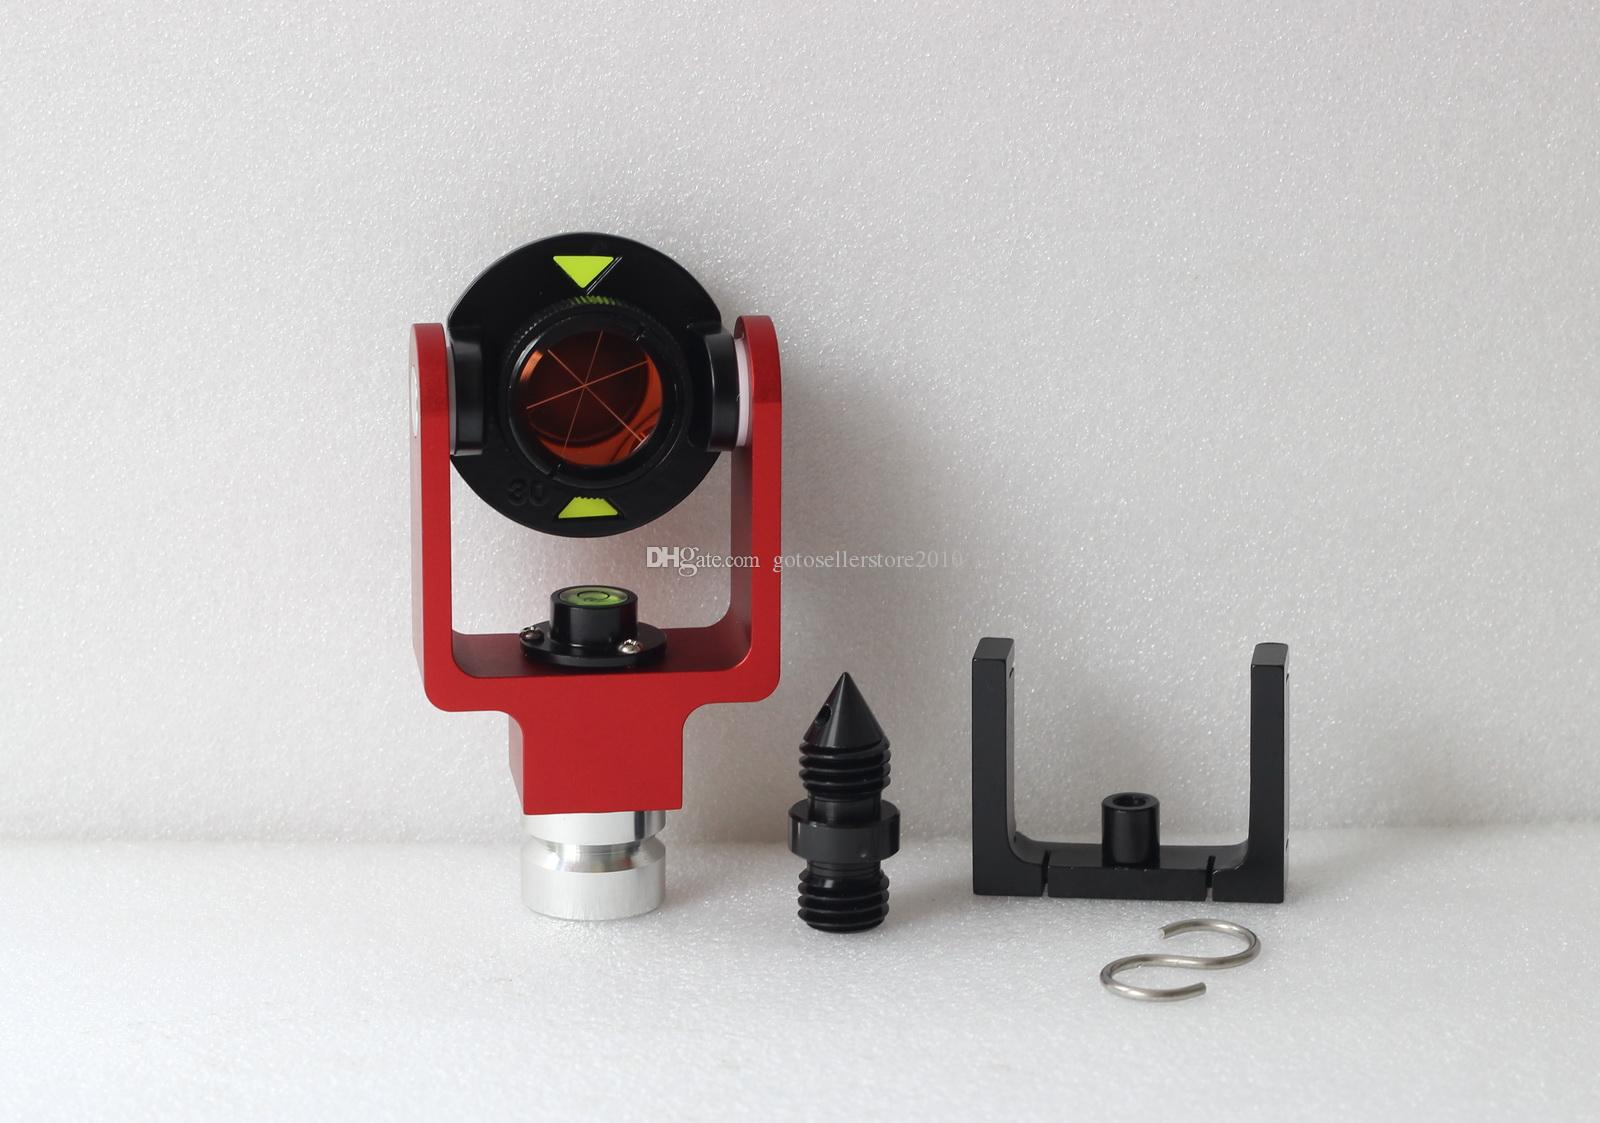 Pentax Total Station Price In India